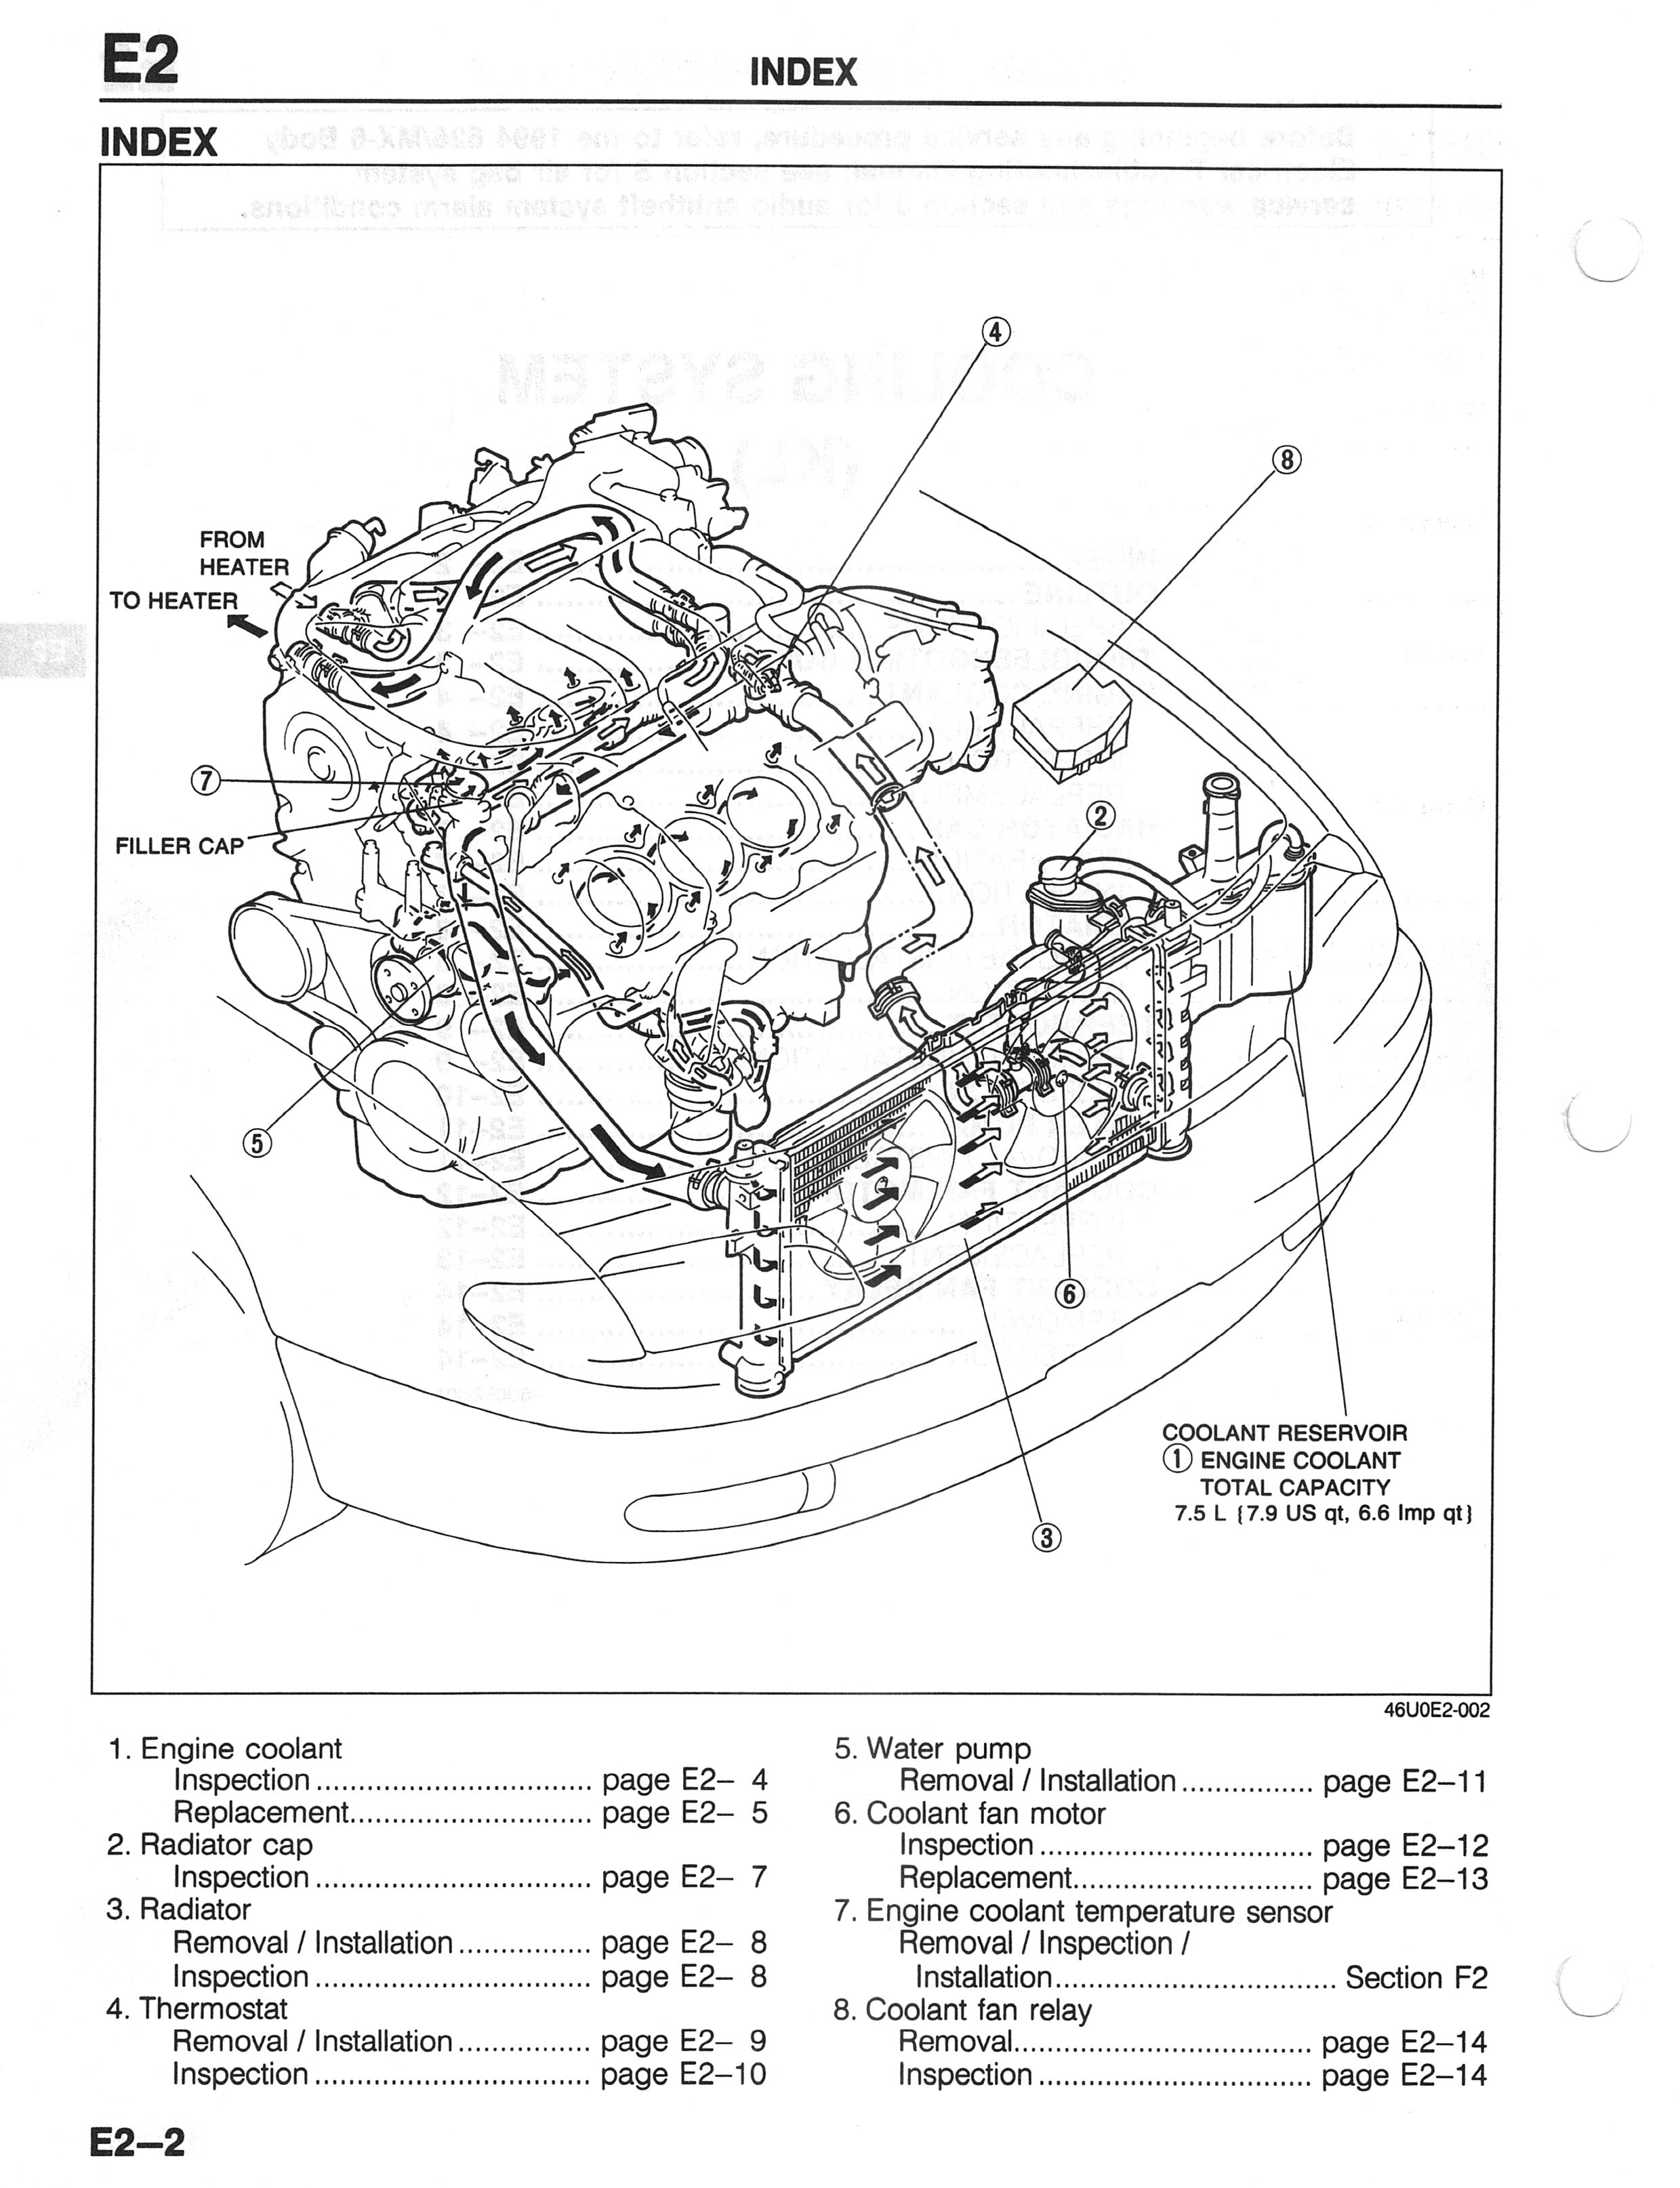 2006 Mazda 6 Cooling System Diagram